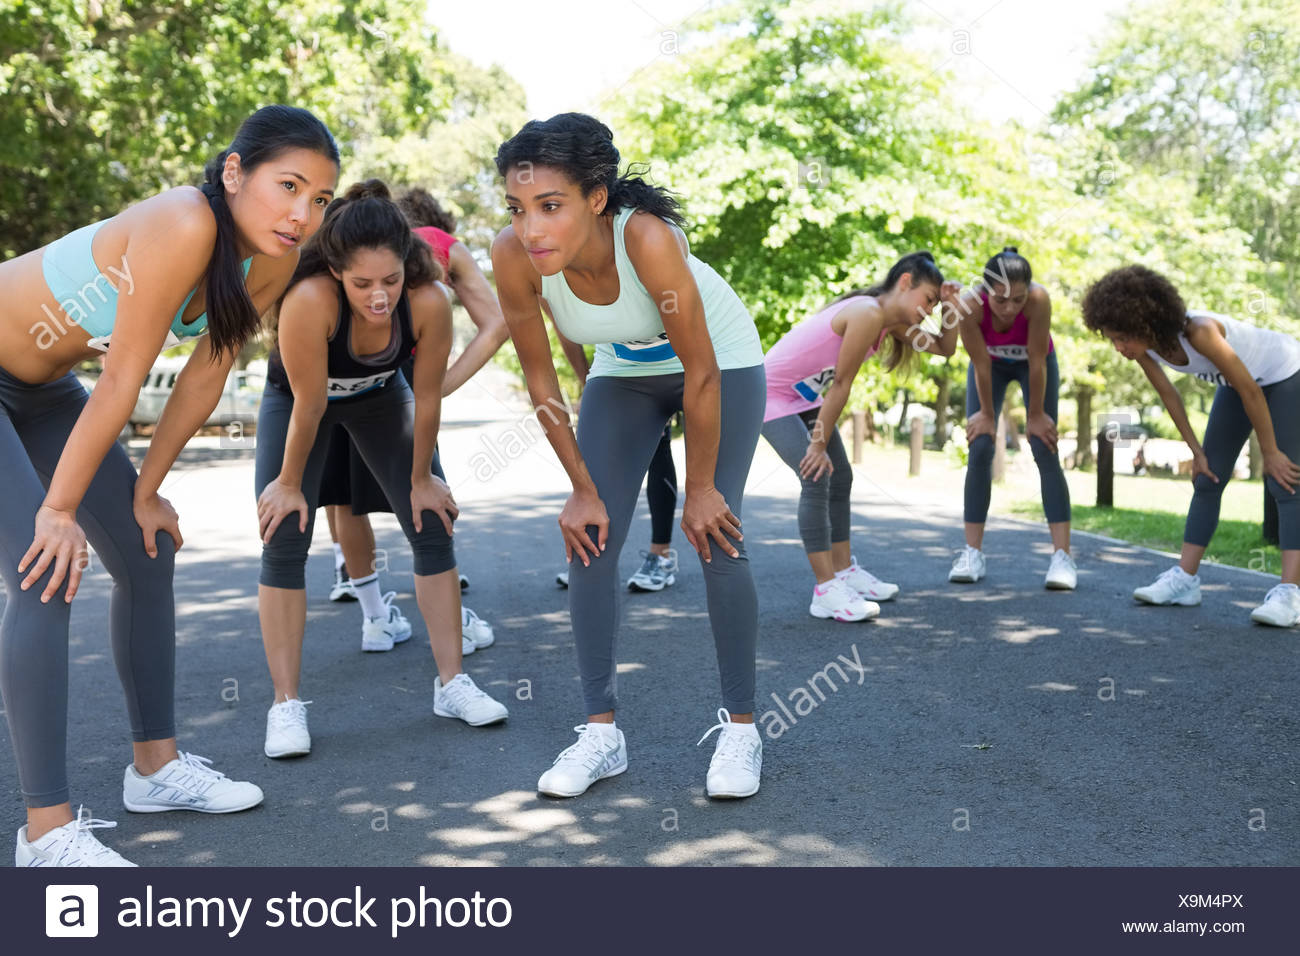 Runners taking a breather from the race - Stock Image